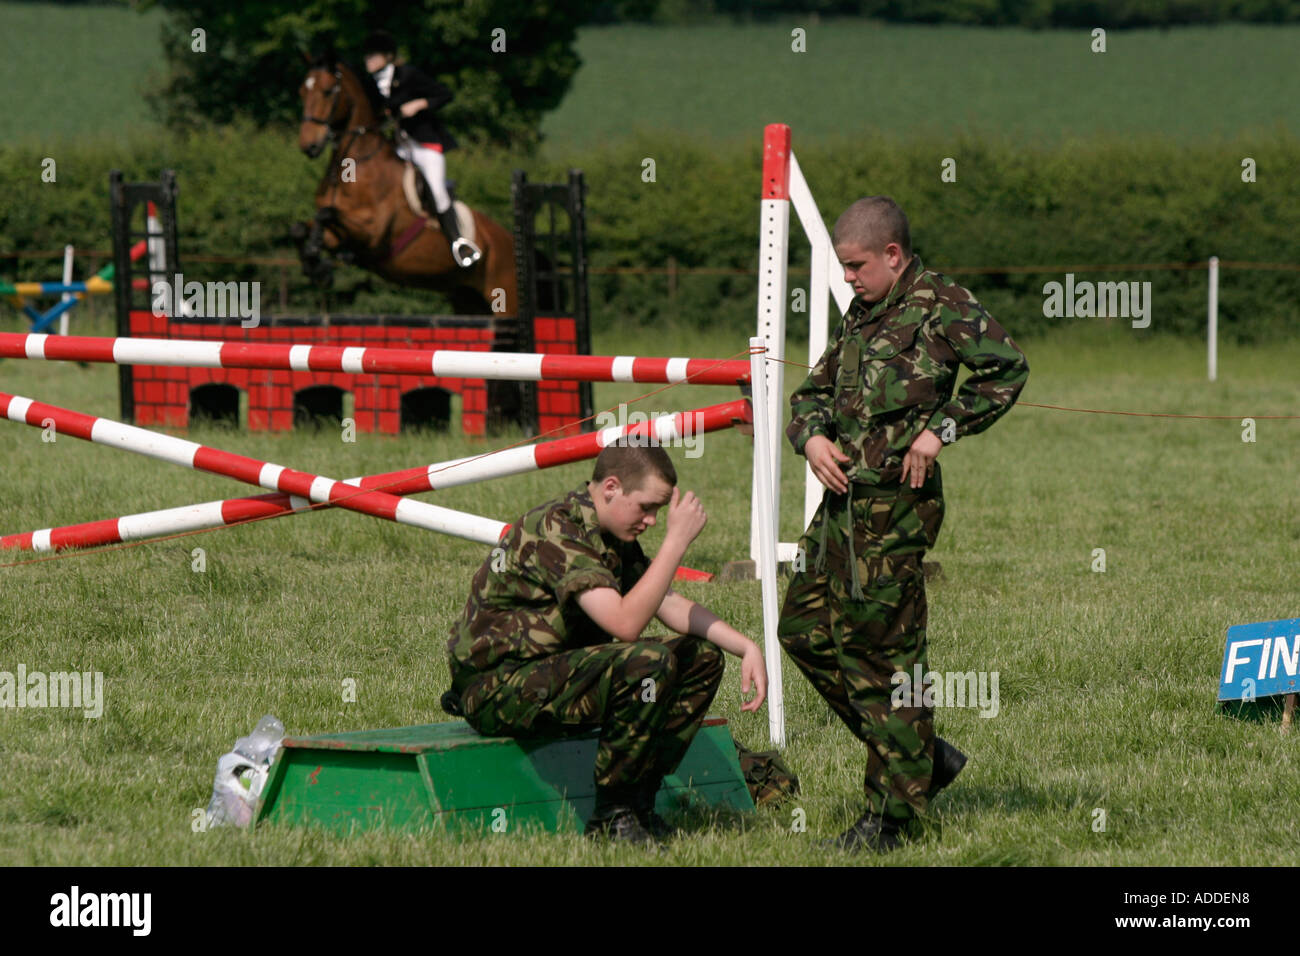 Army cadets help at the South Oxfordshire Riding Club's Open Show on the Hambleden Estate as rider jumps a fence. - Stock Image